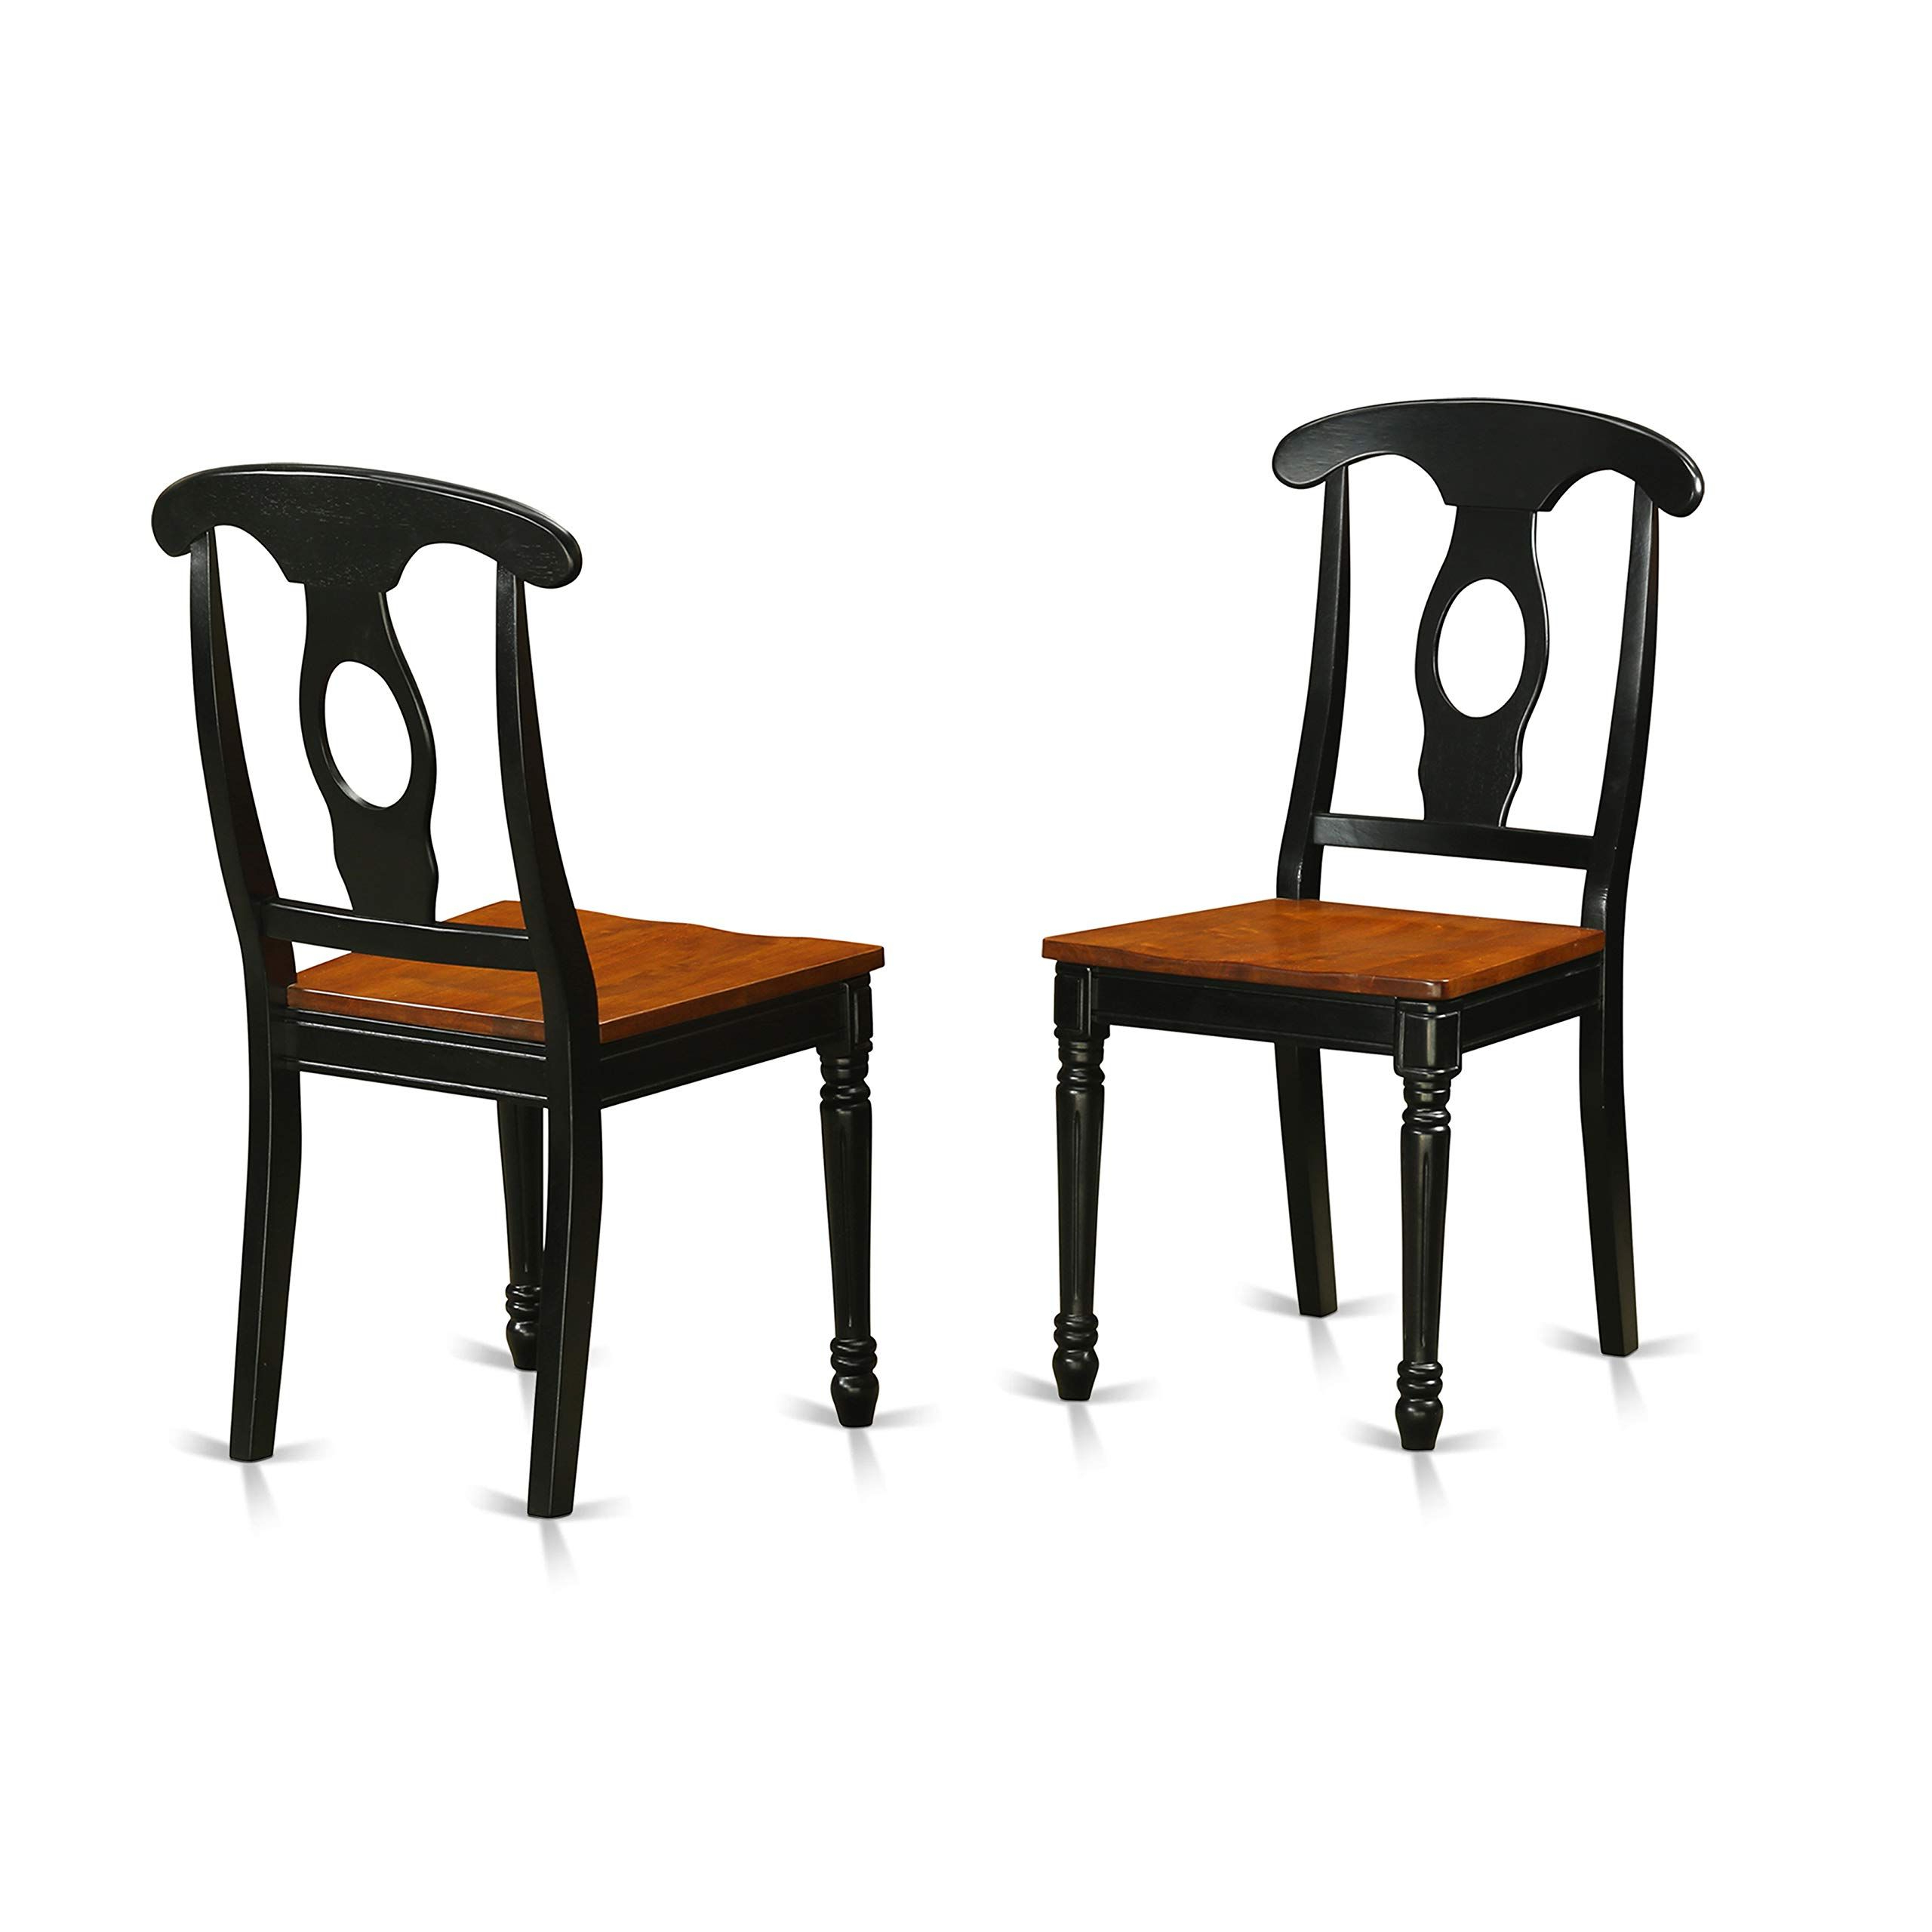 2020 Liston Faux Leather Barrel Chairs With Regard To East West Furniture Kecblkw Kitchen/dining Chair Set With (View 15 of 20)